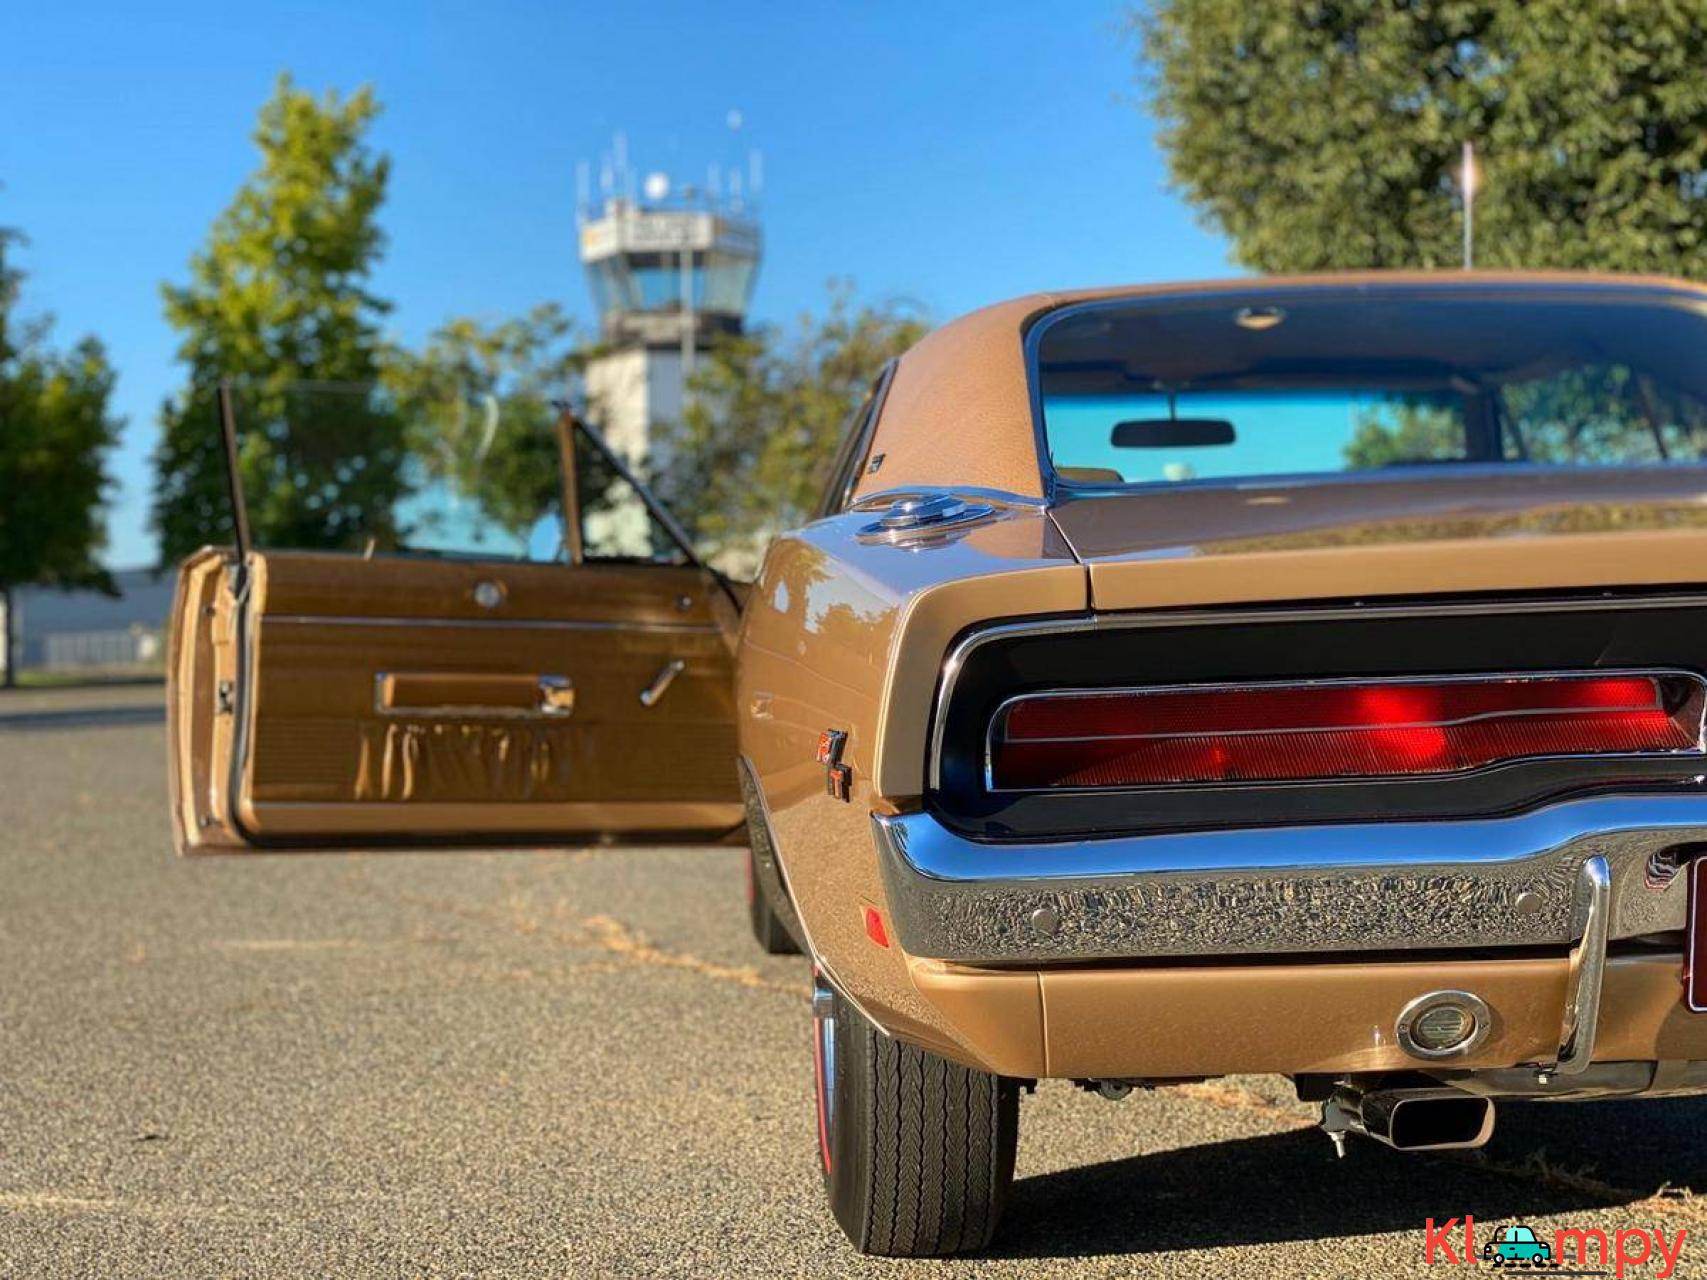 1969 Dodge Charger RT SE 440 375hp High Performance - 12/20